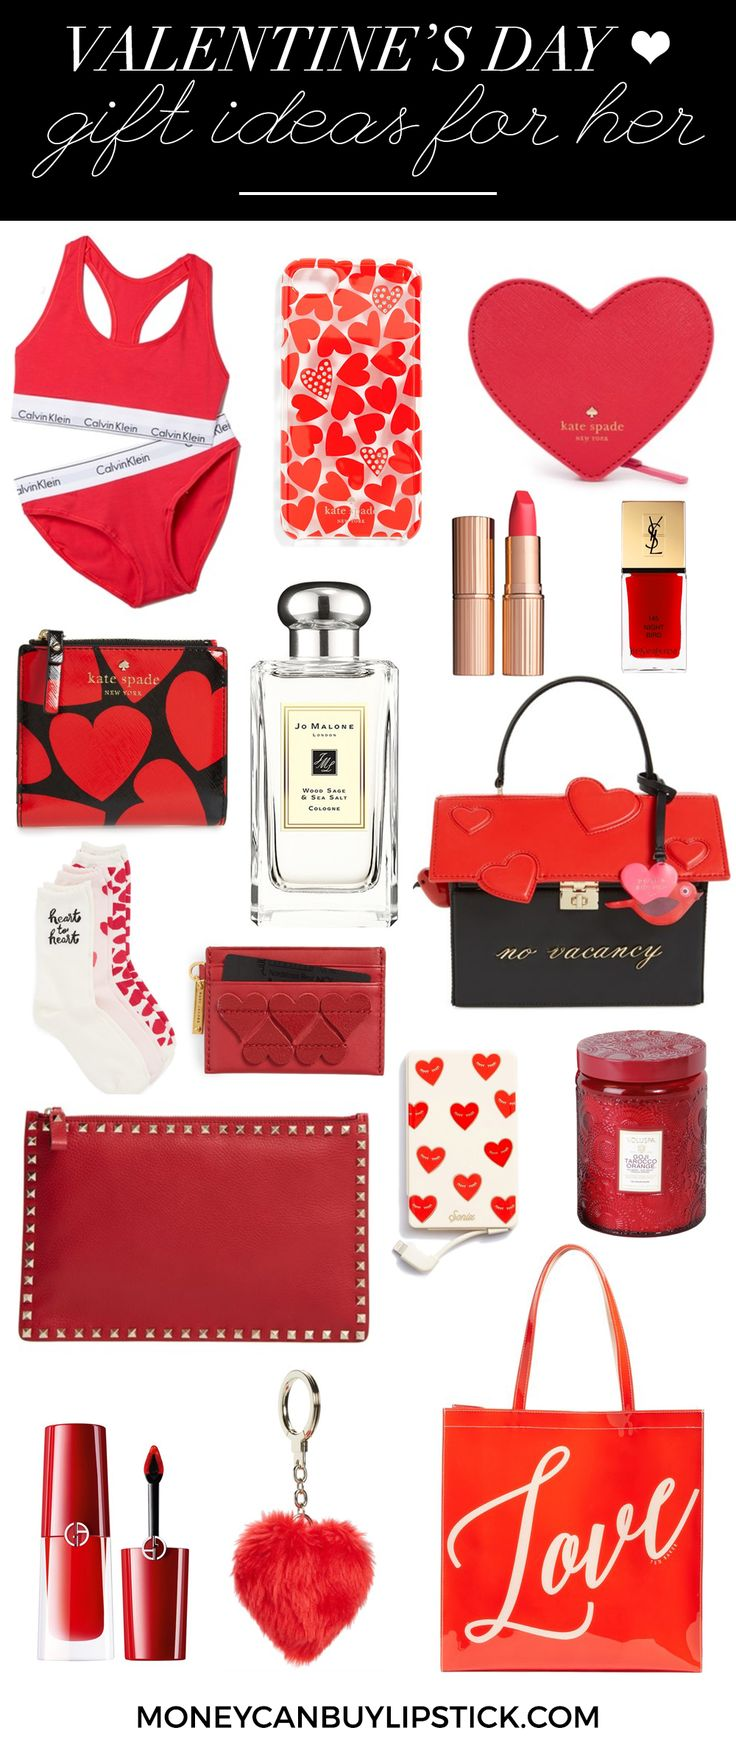 Valentine's Day | Gifts For Her | Valentines's Day Gifts For Her | Vday | Galentine's Day | Red Fashion | Valentine's Day Theme | Valentine's Day Shopping